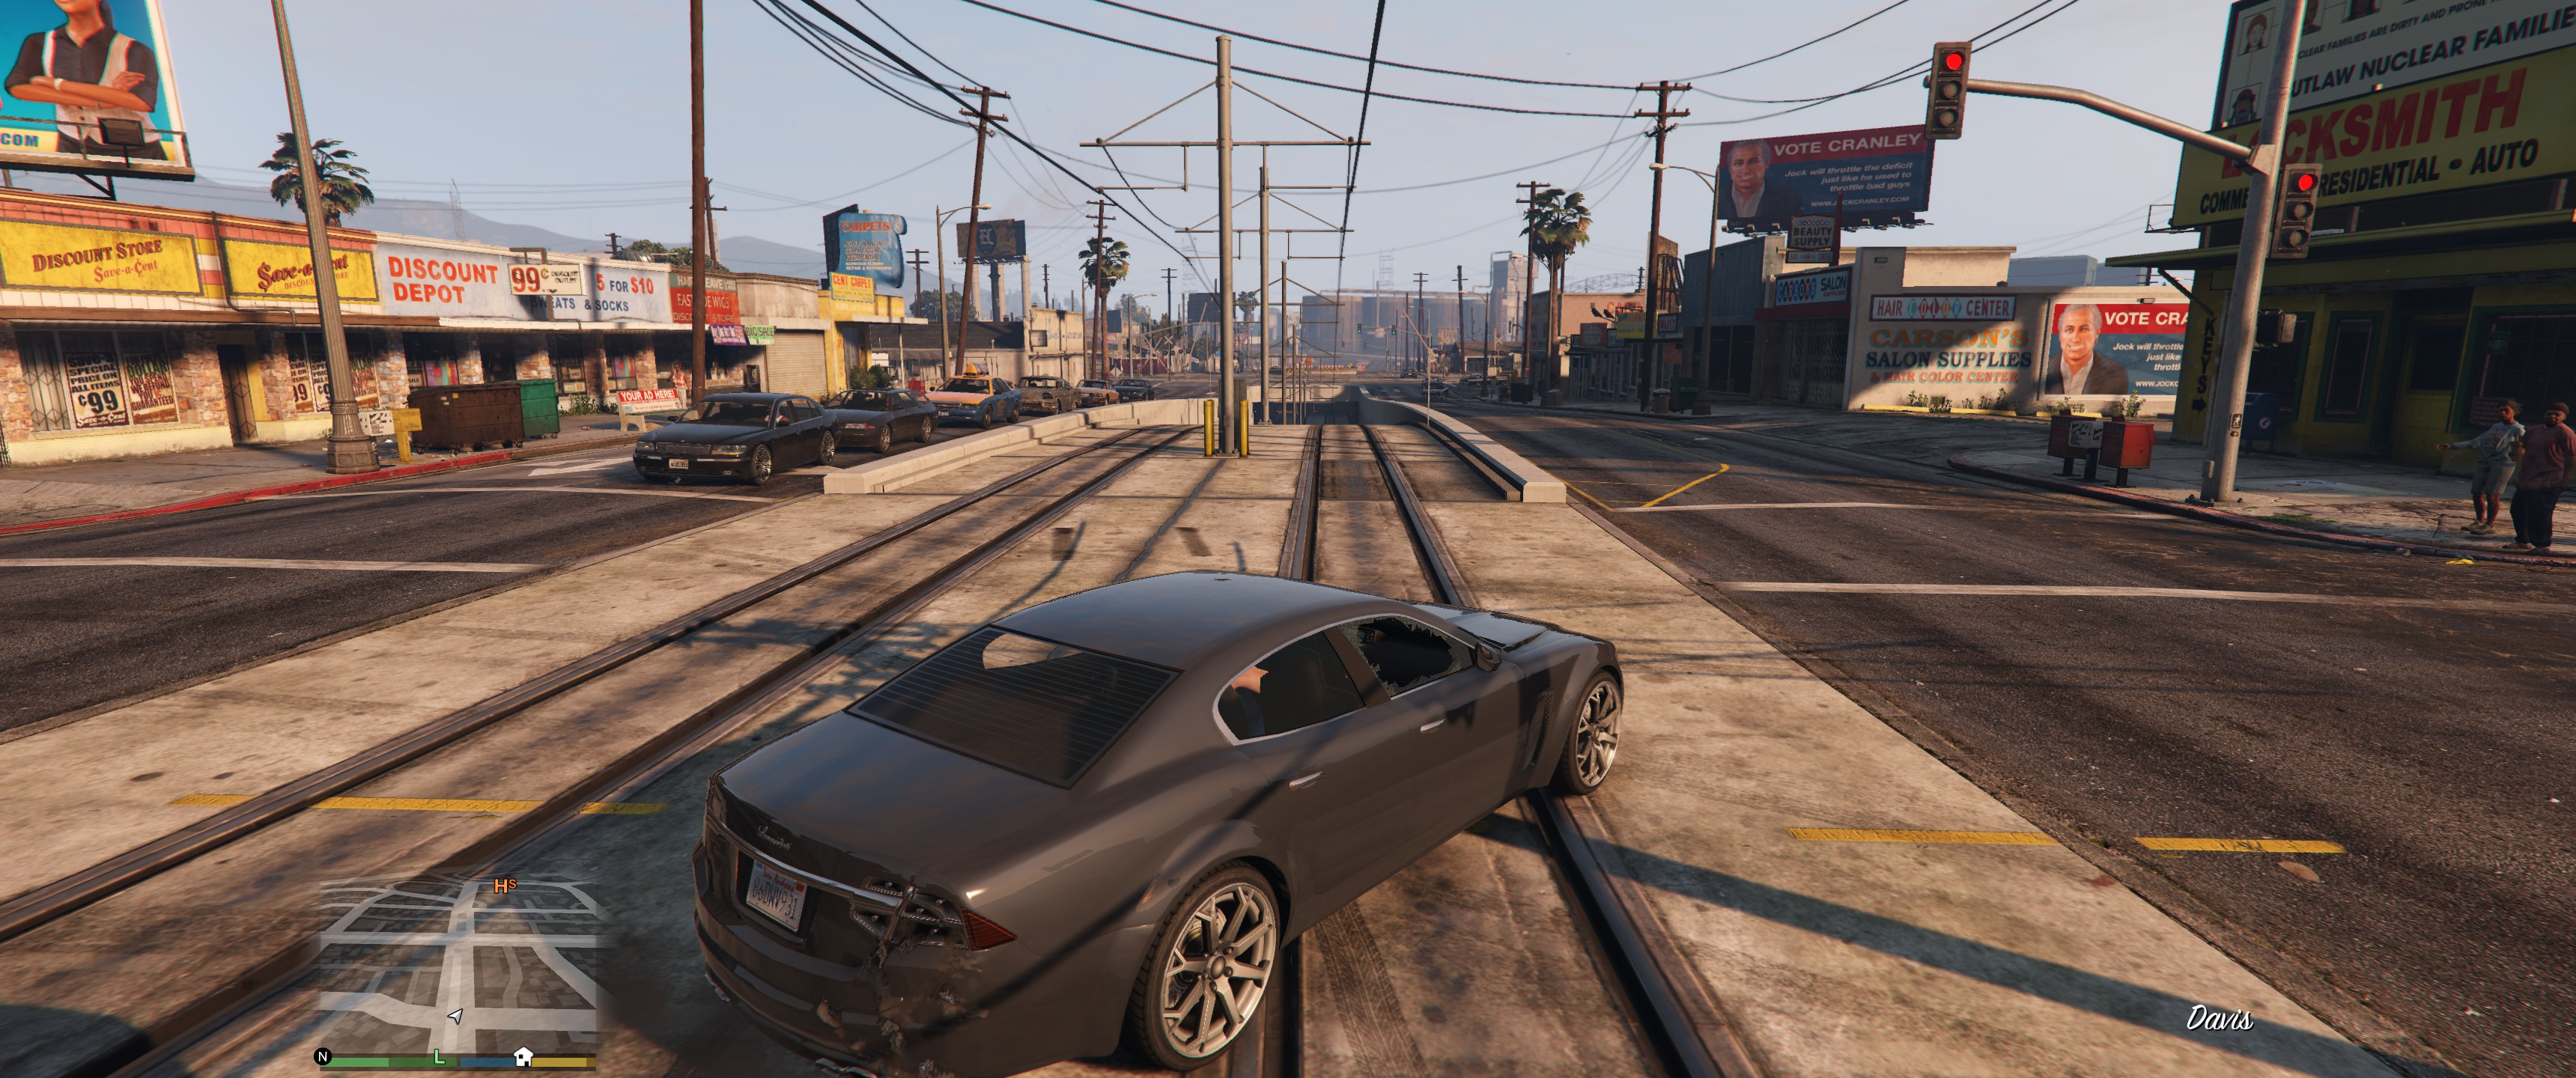 GTA 5 PC Settings Optimization - Overclock net - An